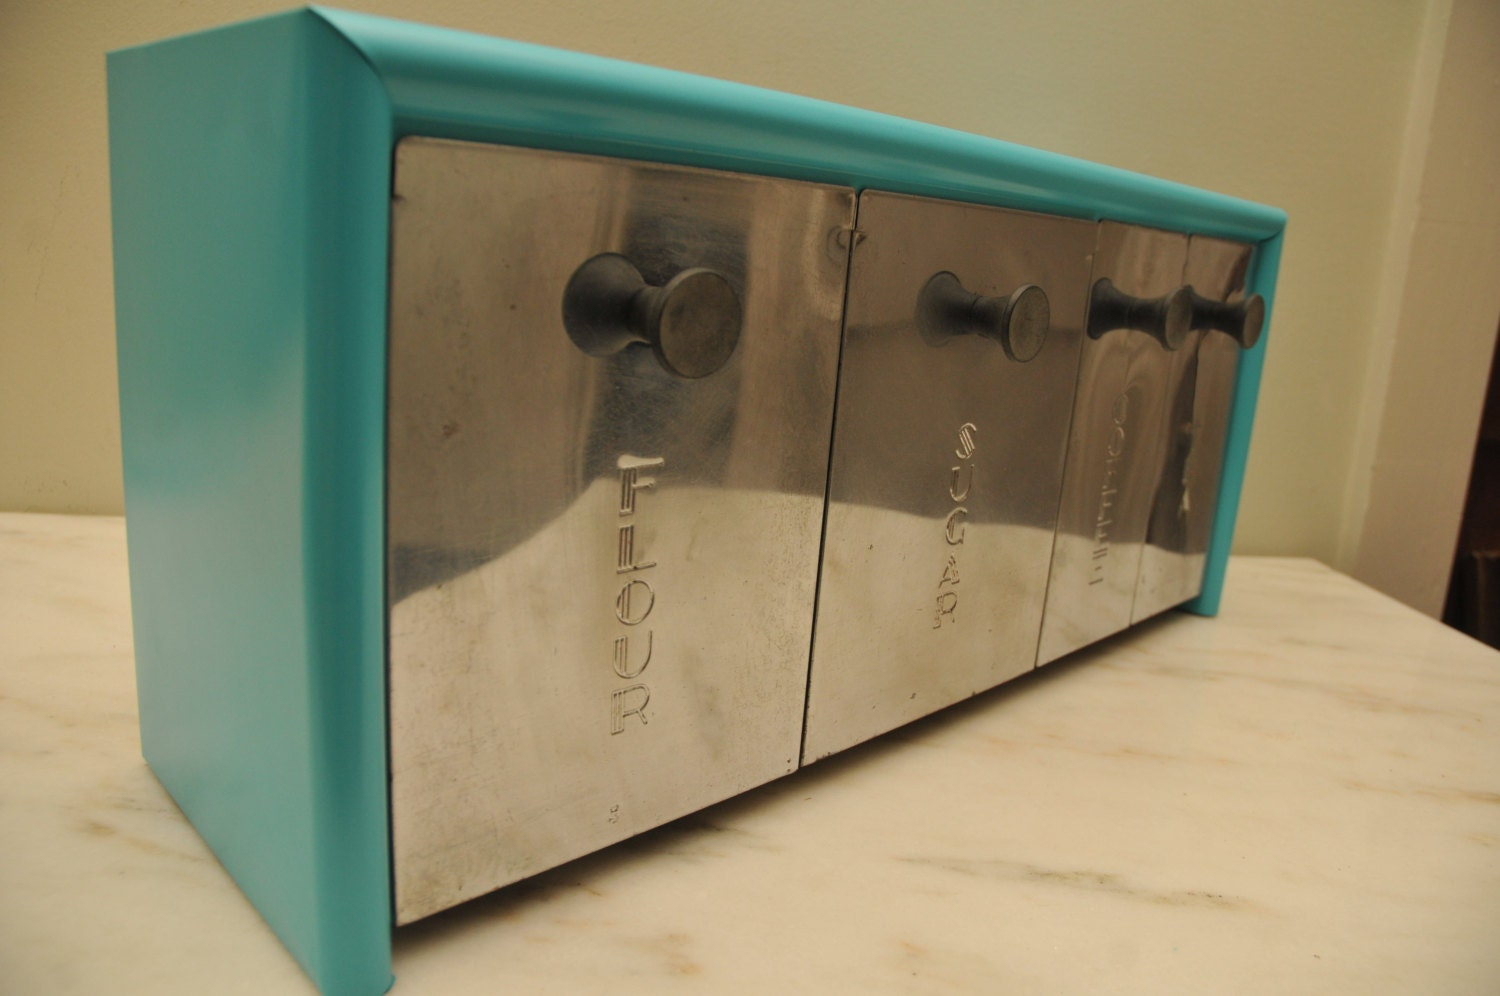 vintage turquoise emco metal kitchen canister set by